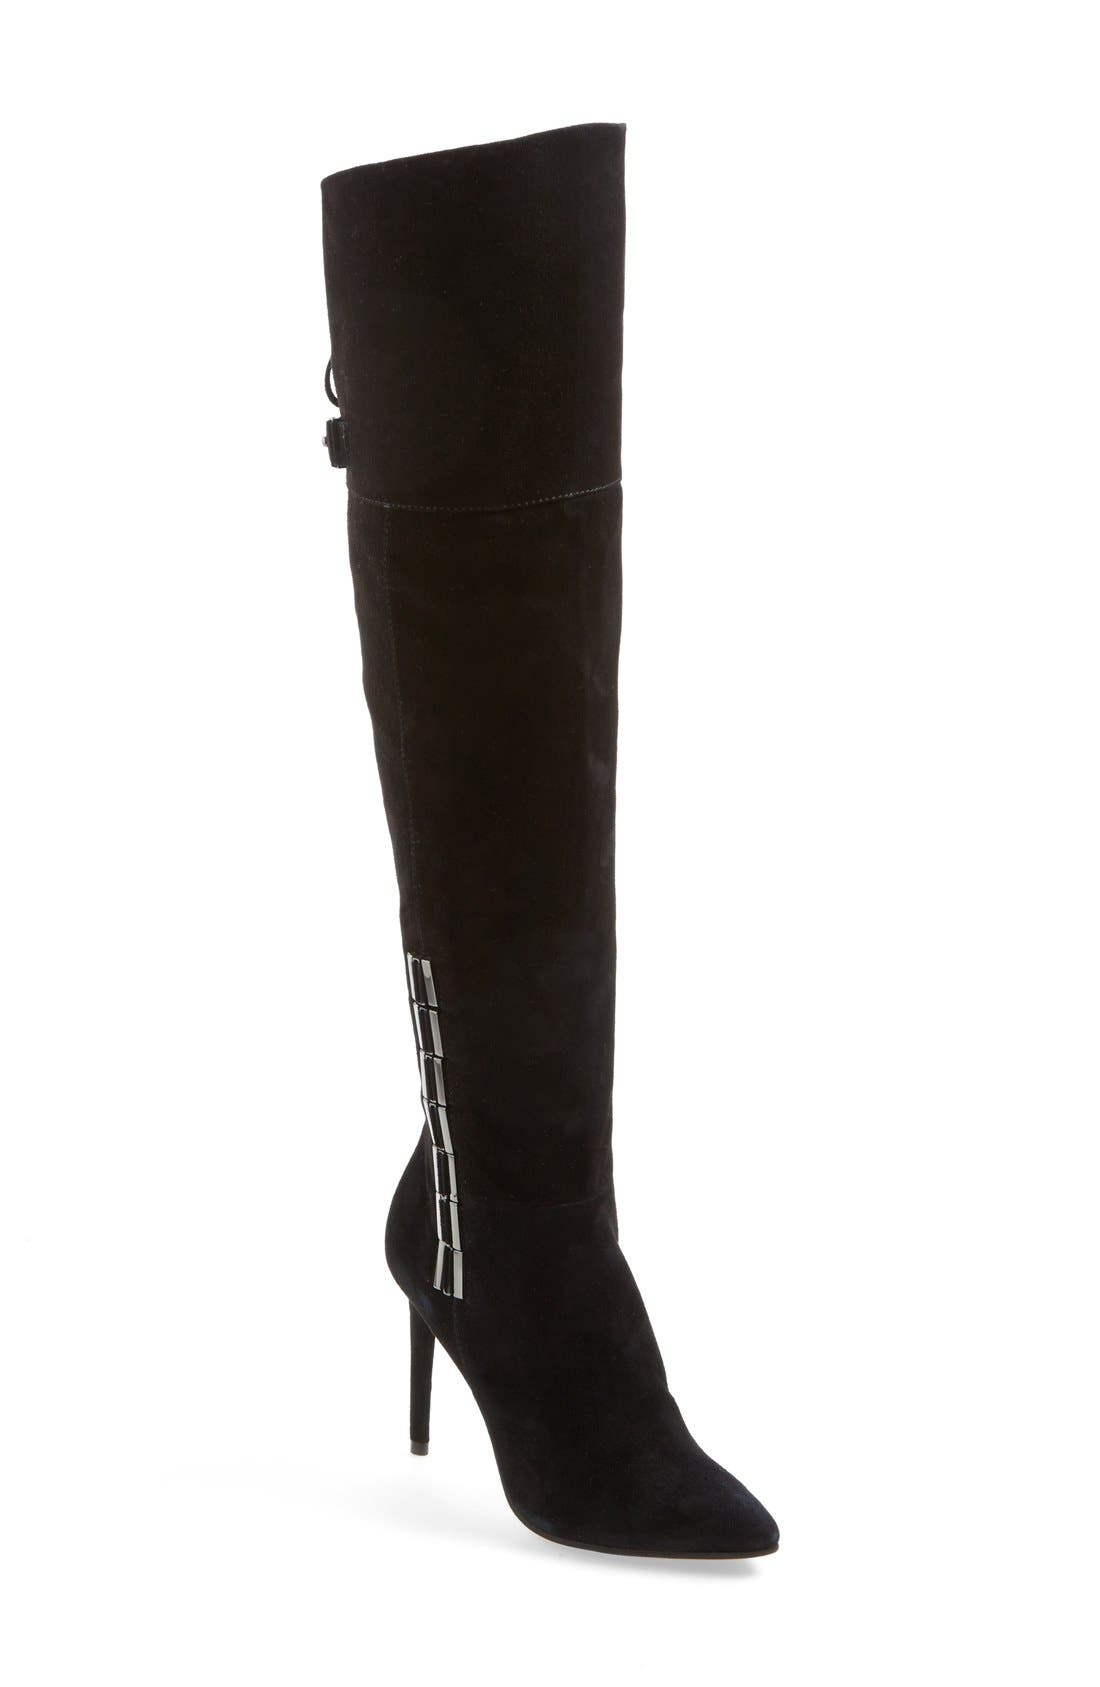 DOLCE VITA 'Inara' Over the Knee Pointy Toe Suede Boot, Main, color, 001